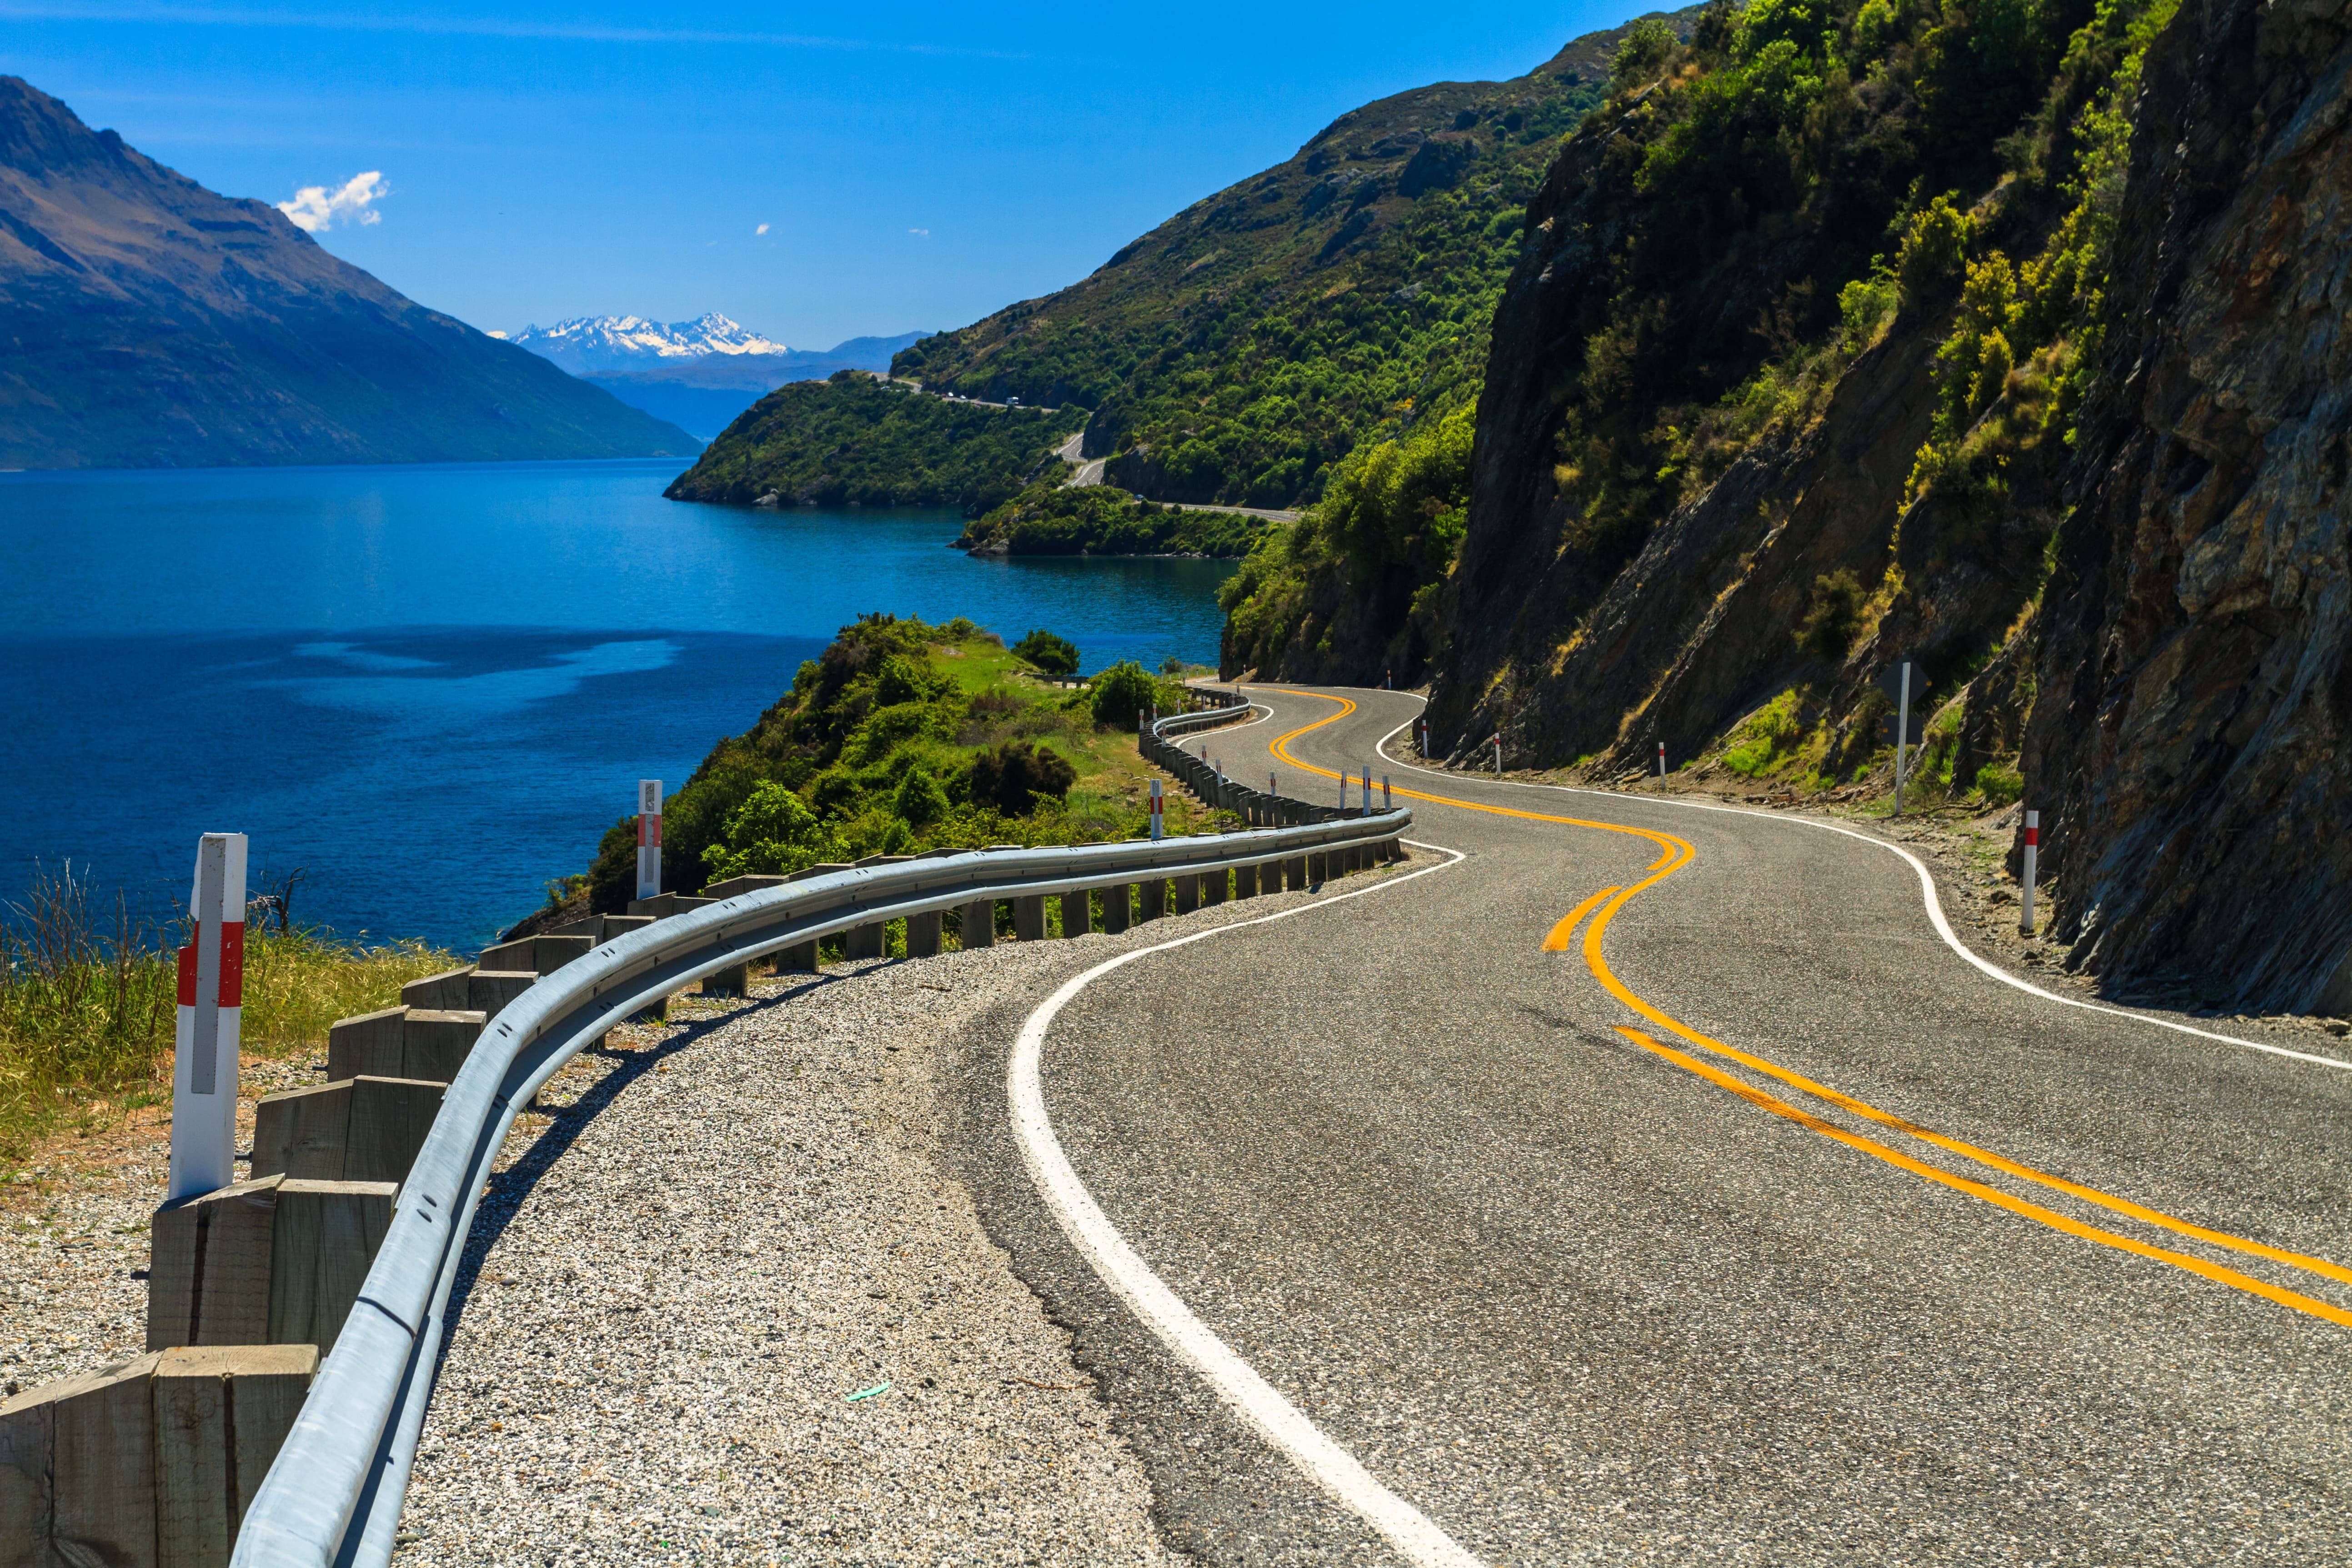 15 Tips and 3 Destinations for Your Next Great Road Trip Across Canada